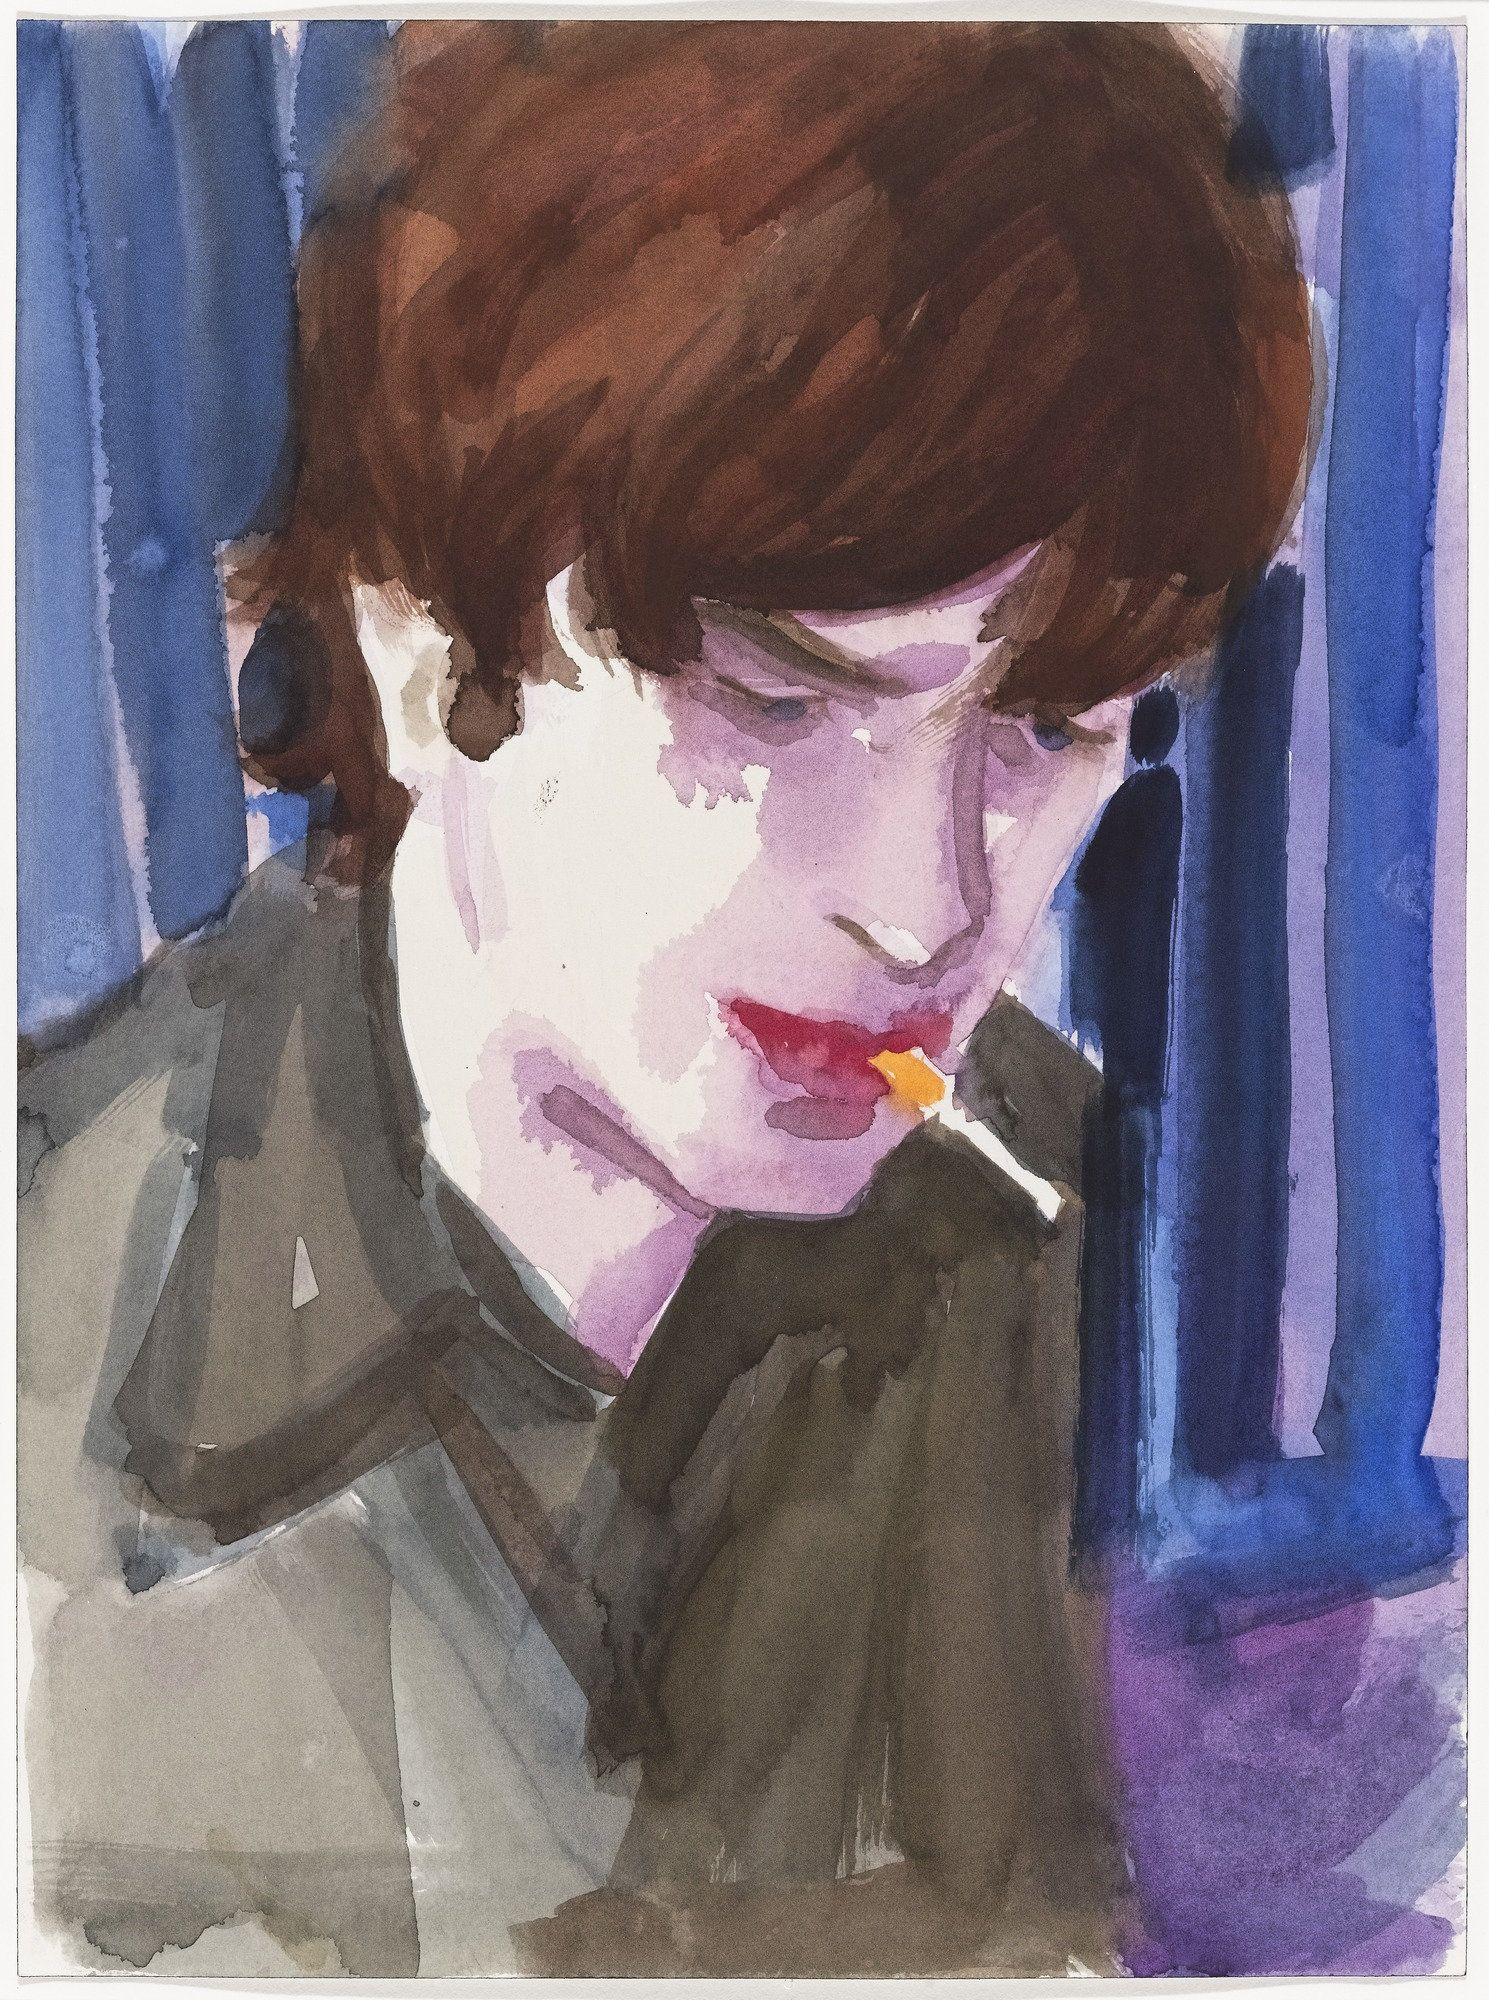 Elizabeth Peyton – Matthew Smoking (1997) watercolour on paper, 30x22cm